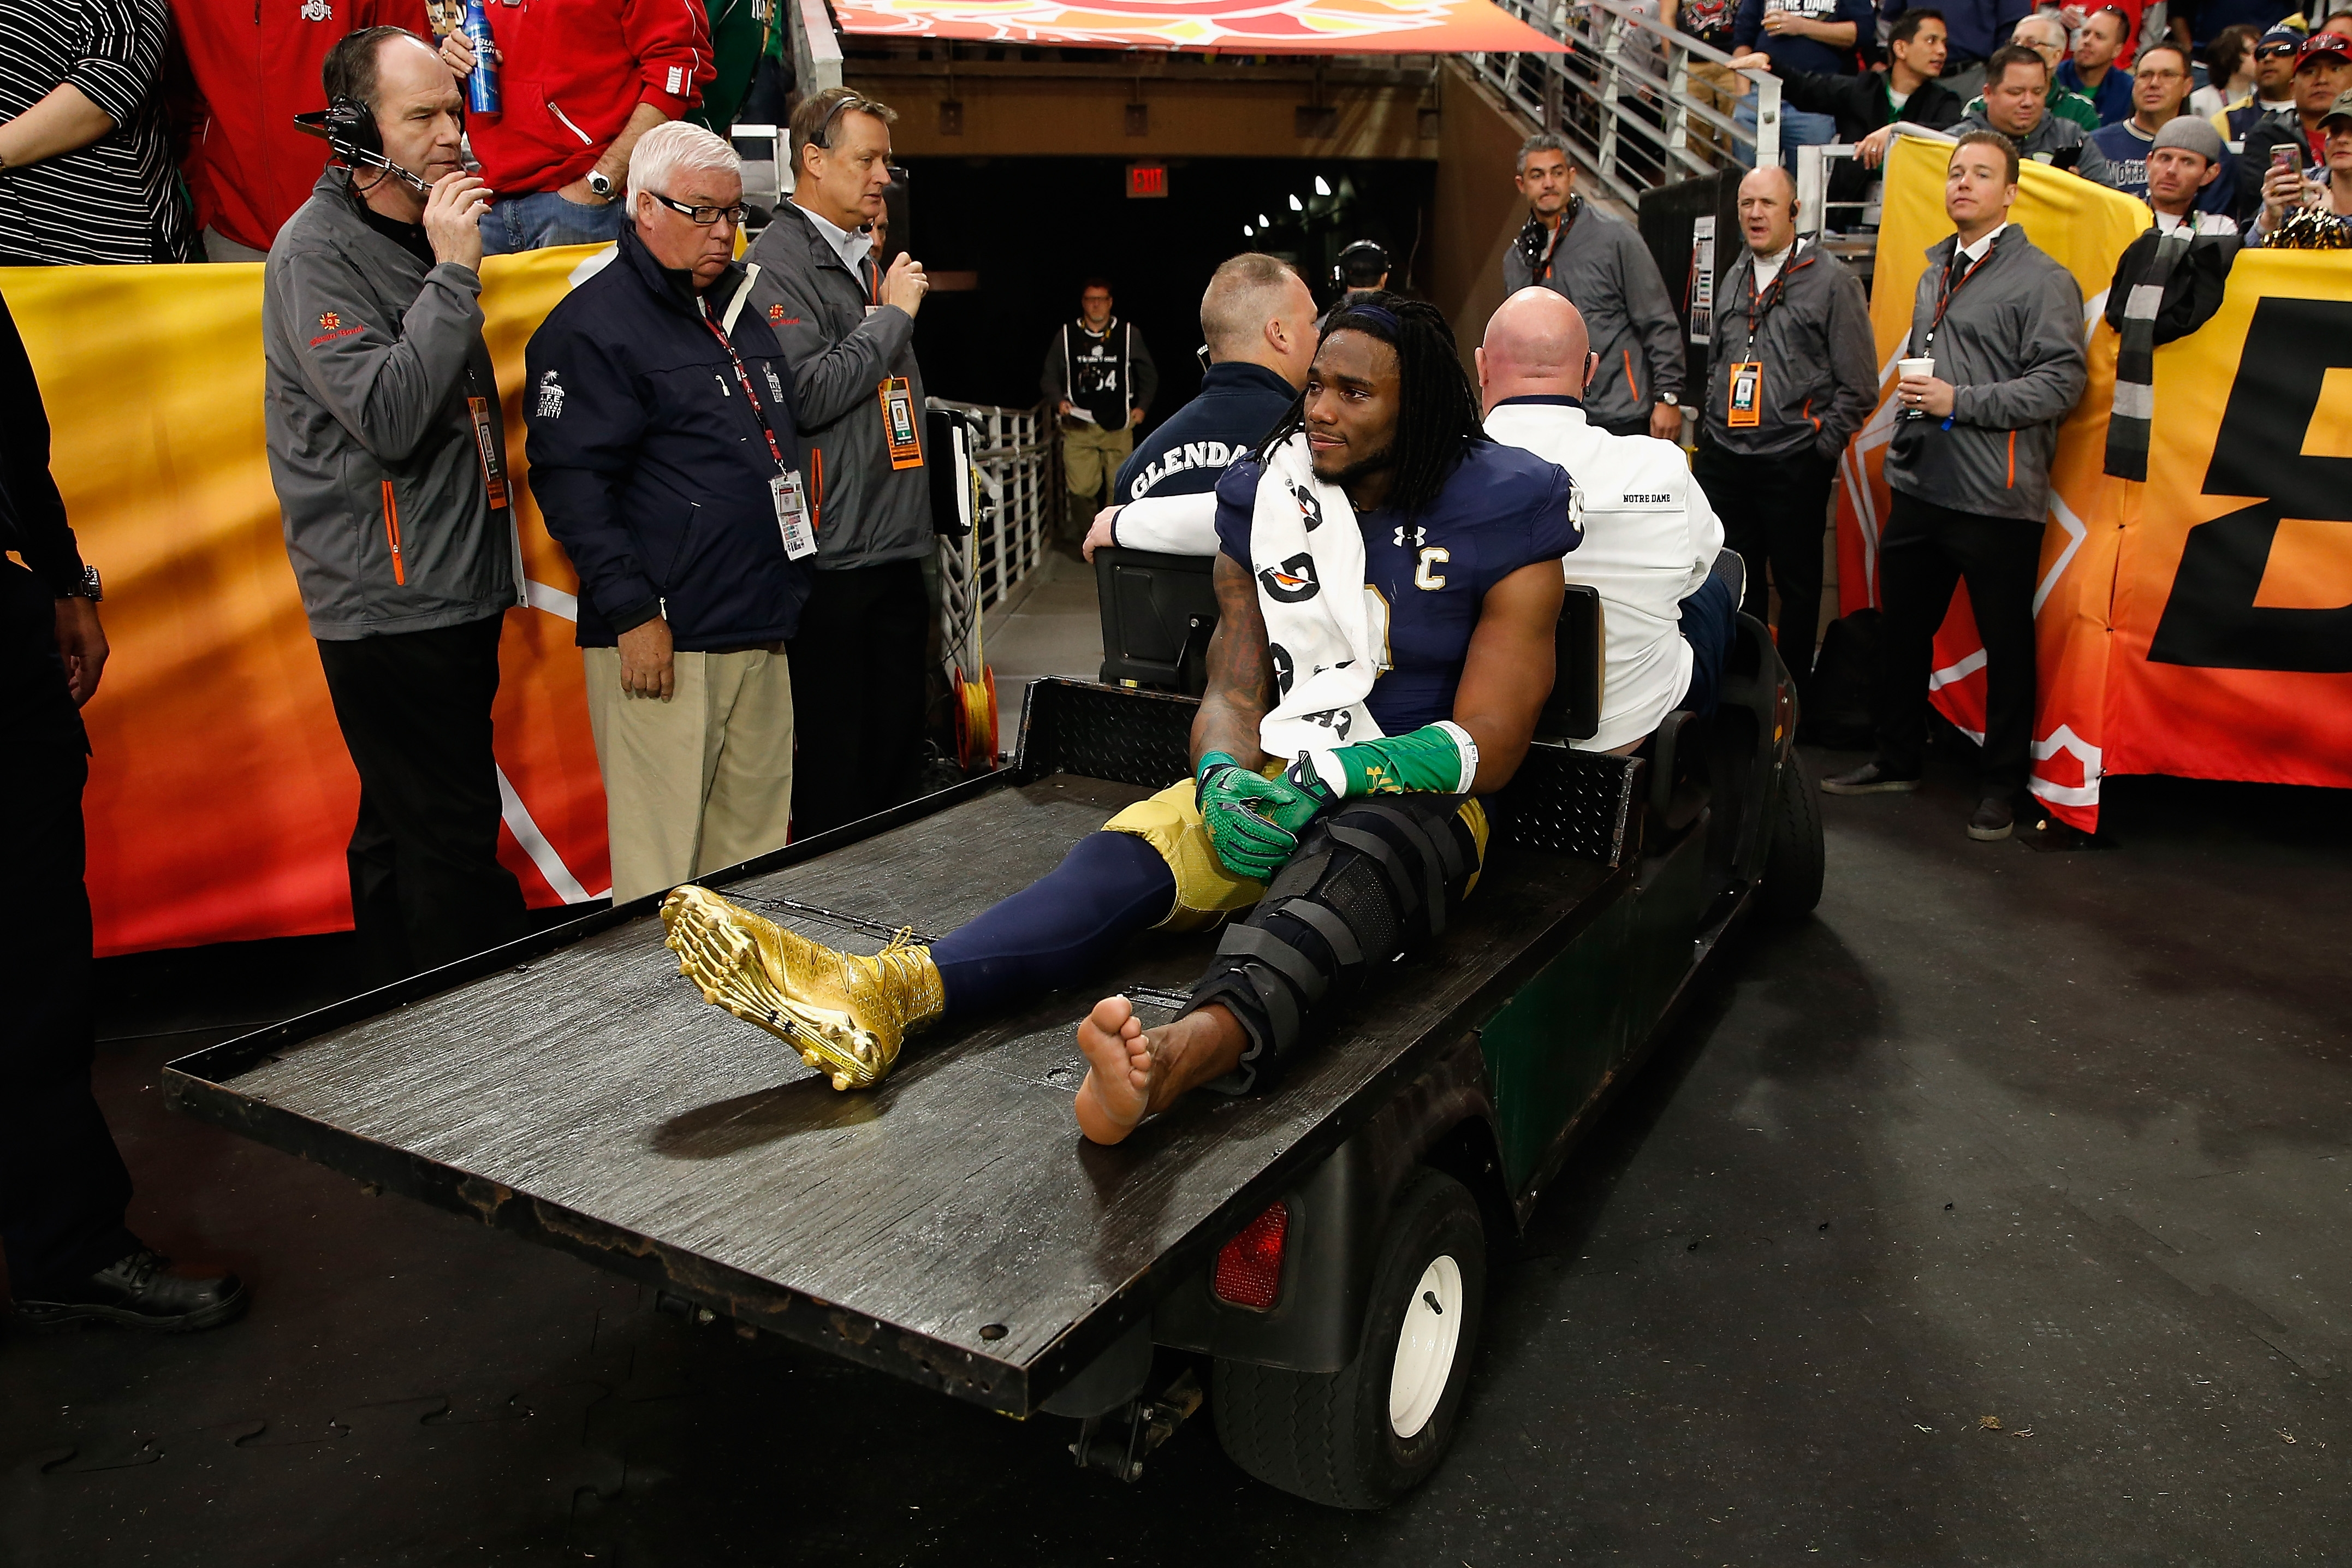 Notre Dame linebacker Jaylon Smith is carted off the field after an injury during the first quarter of the Fiesta Bowl against Ohio State on Jan. 1. (Getty Images)